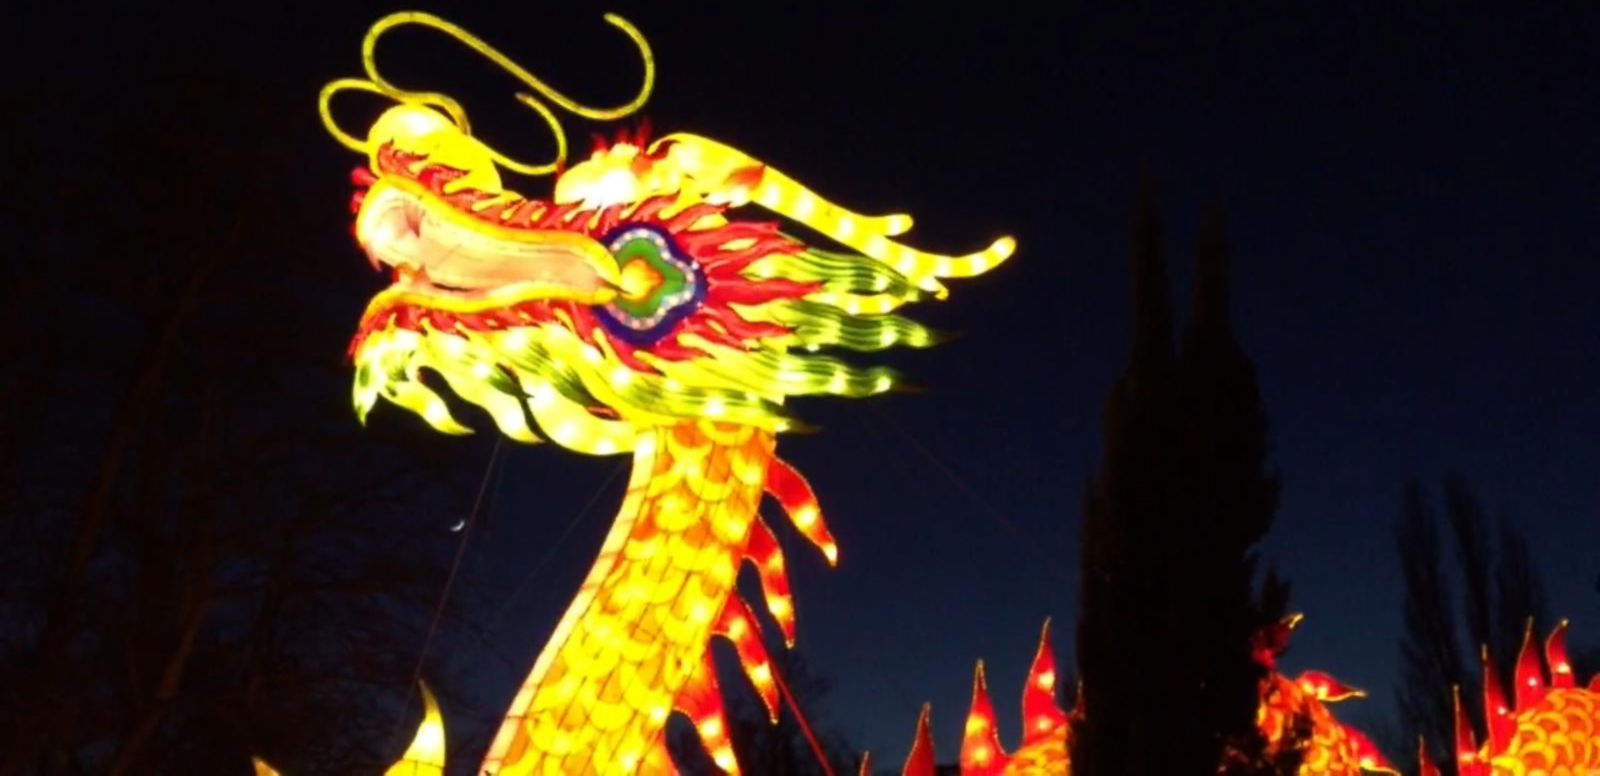 VIDEO: London's Magical Lantern Festival